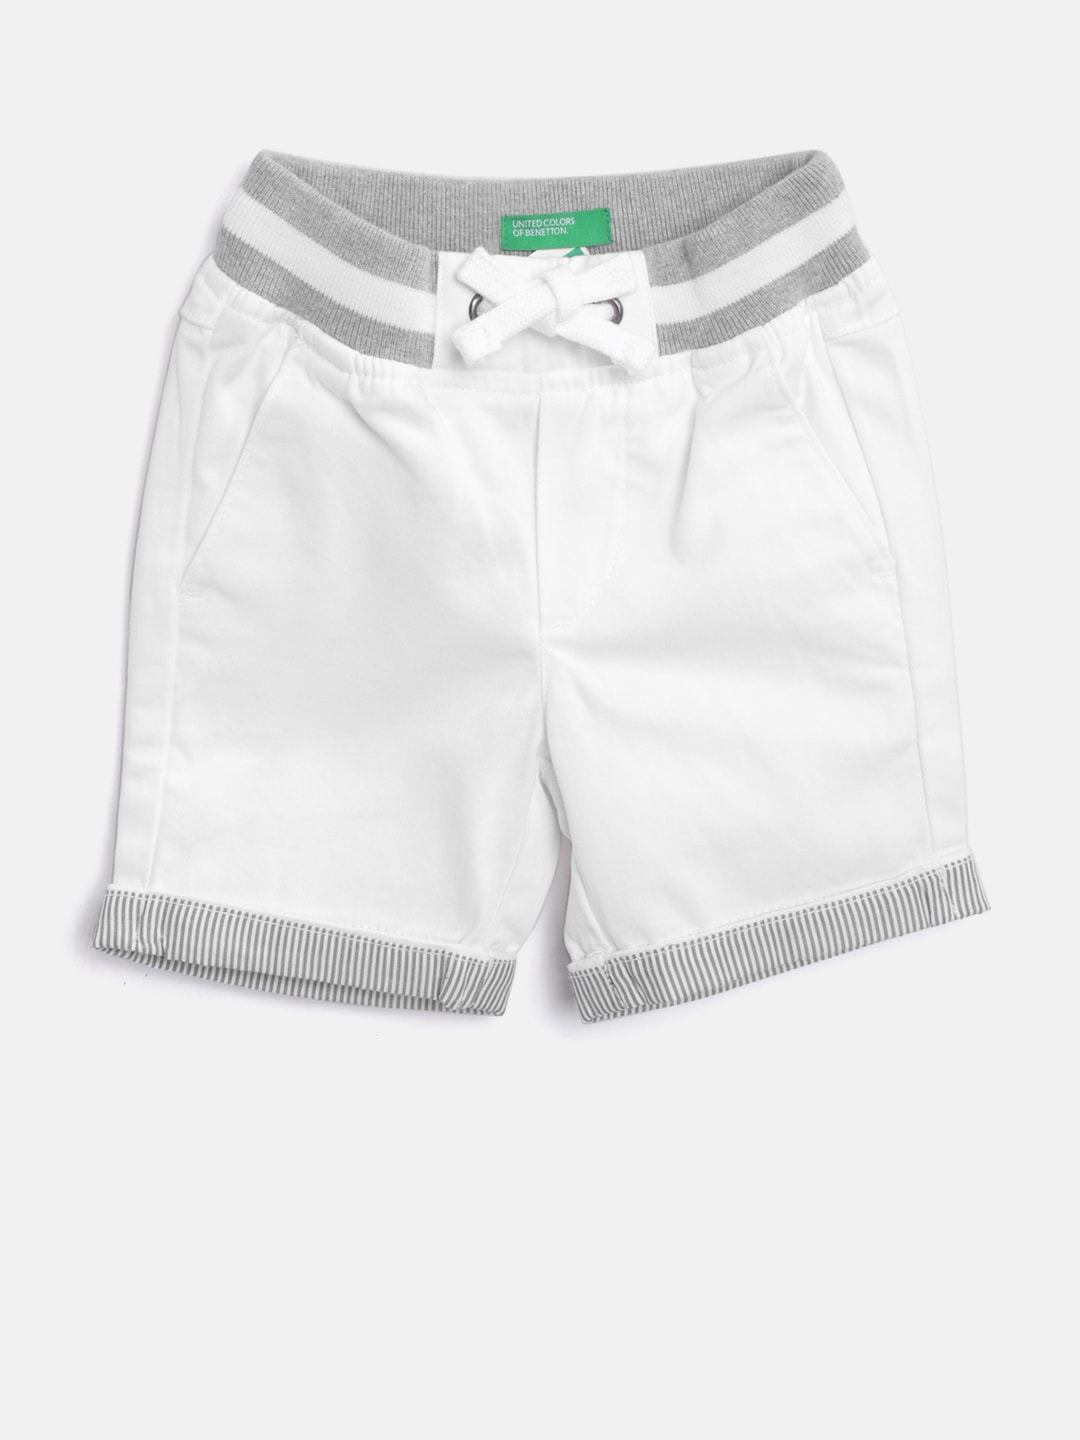 2c1e1a07d6f3 United Colors Of Benetton Shorts - Buy United Colors Of Benetton Shorts  Online in India